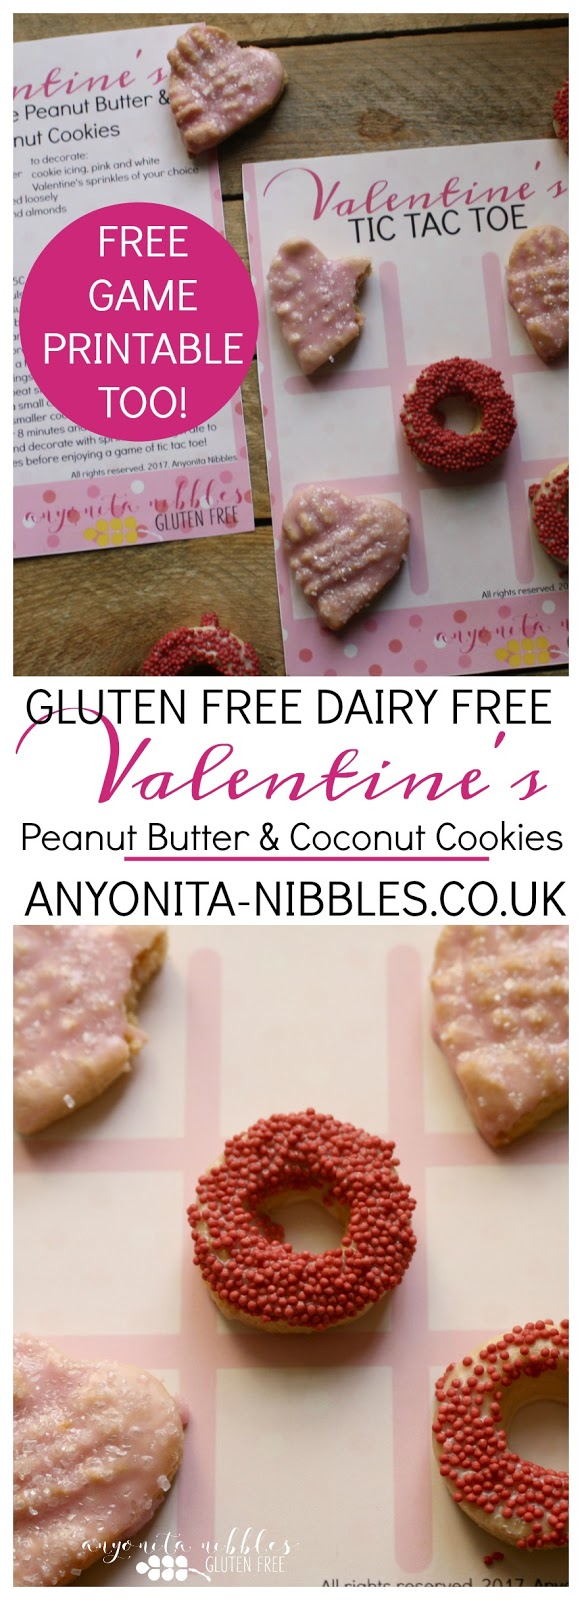 Gluten free and dairy free Valentine's Peanut Butter and Coconut Cookies | Anyonita-Nibbles.co.uk